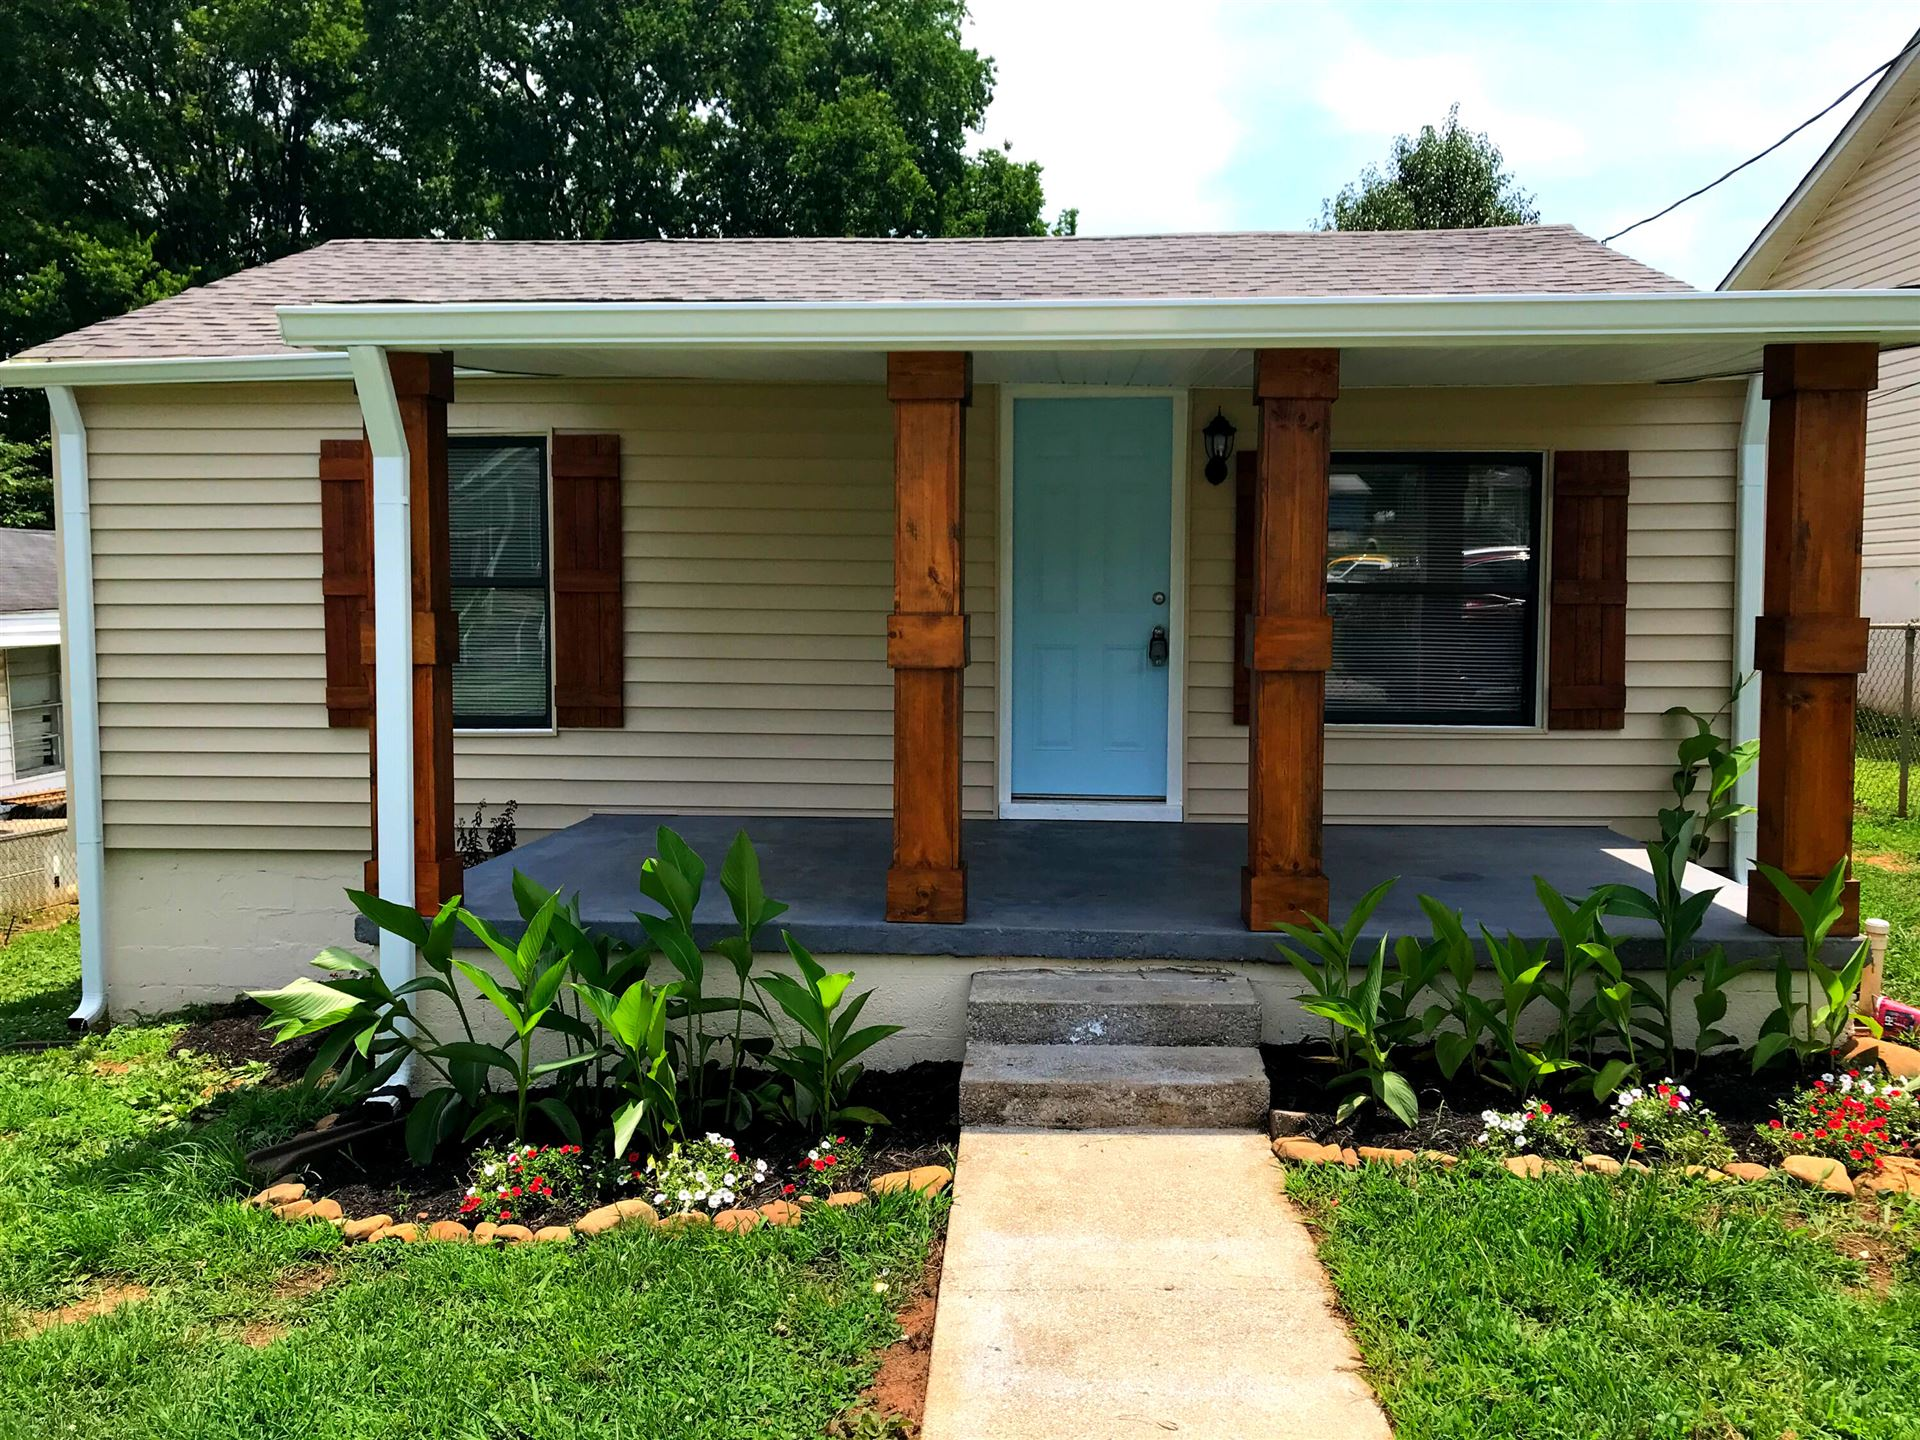 Photo of 806 Sidebrook Ave, Knoxville, TN 37921 (MLS # 1167898)